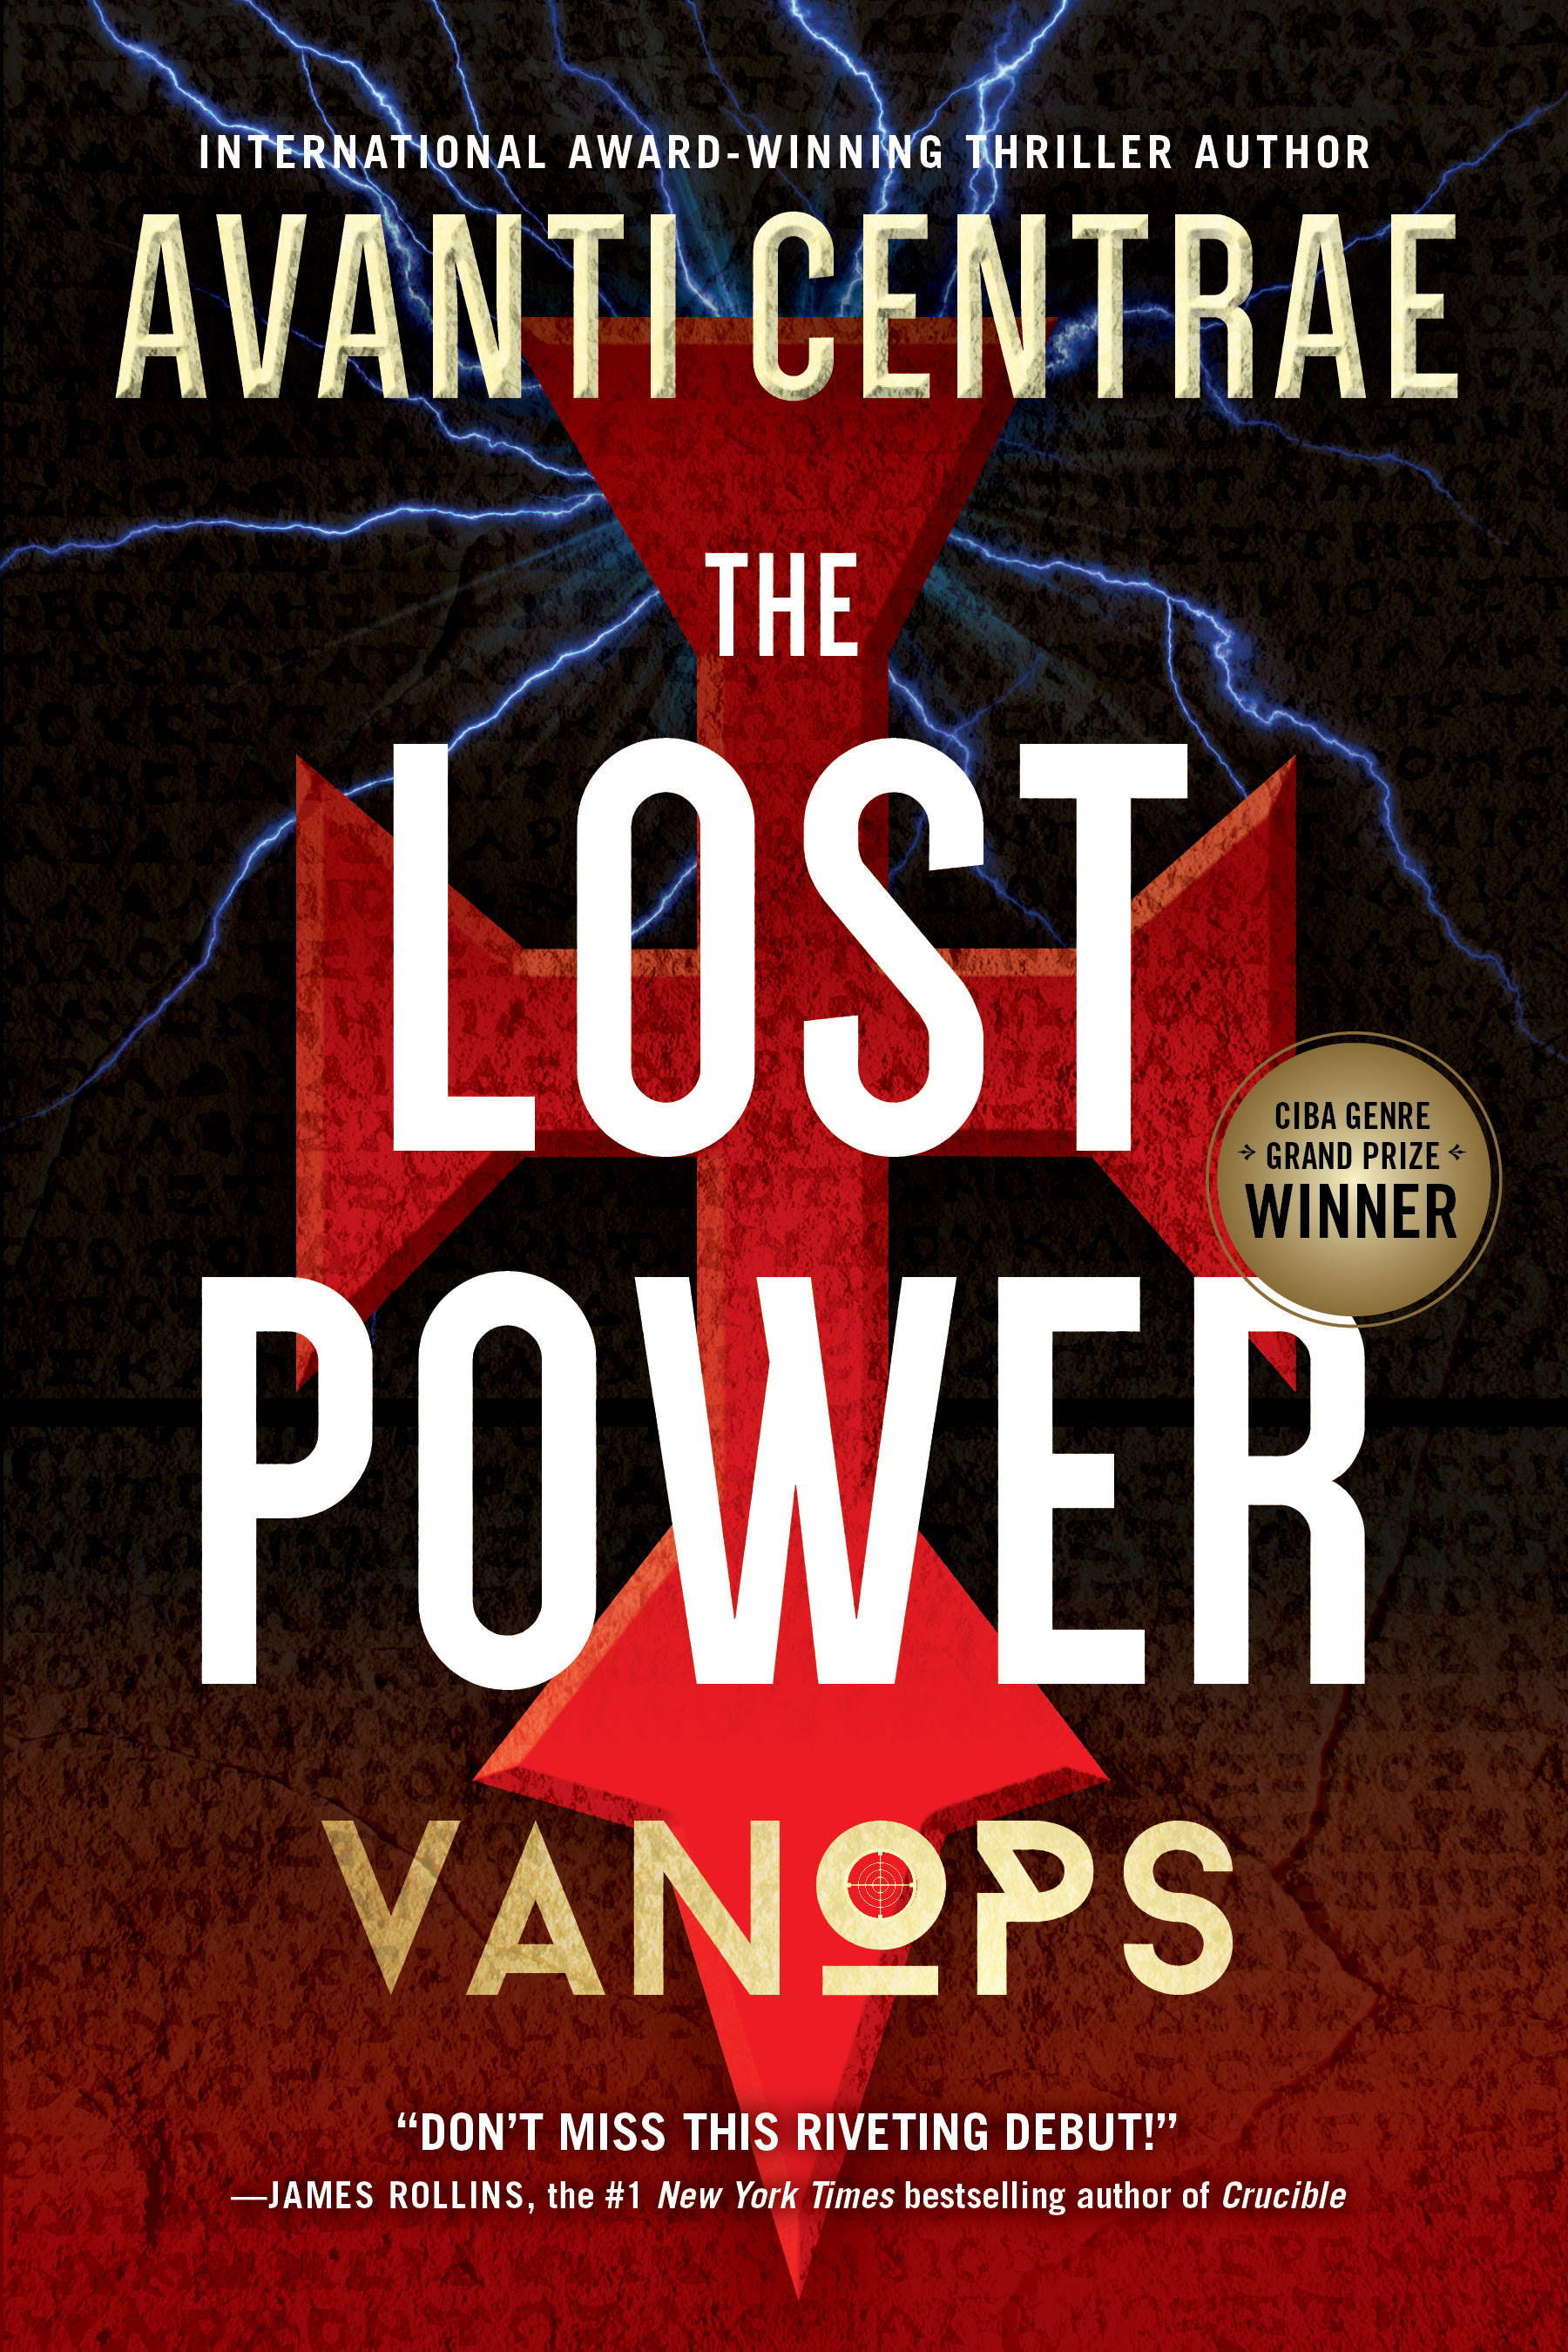 VanOps: The Lost Power by Avanti Centrae